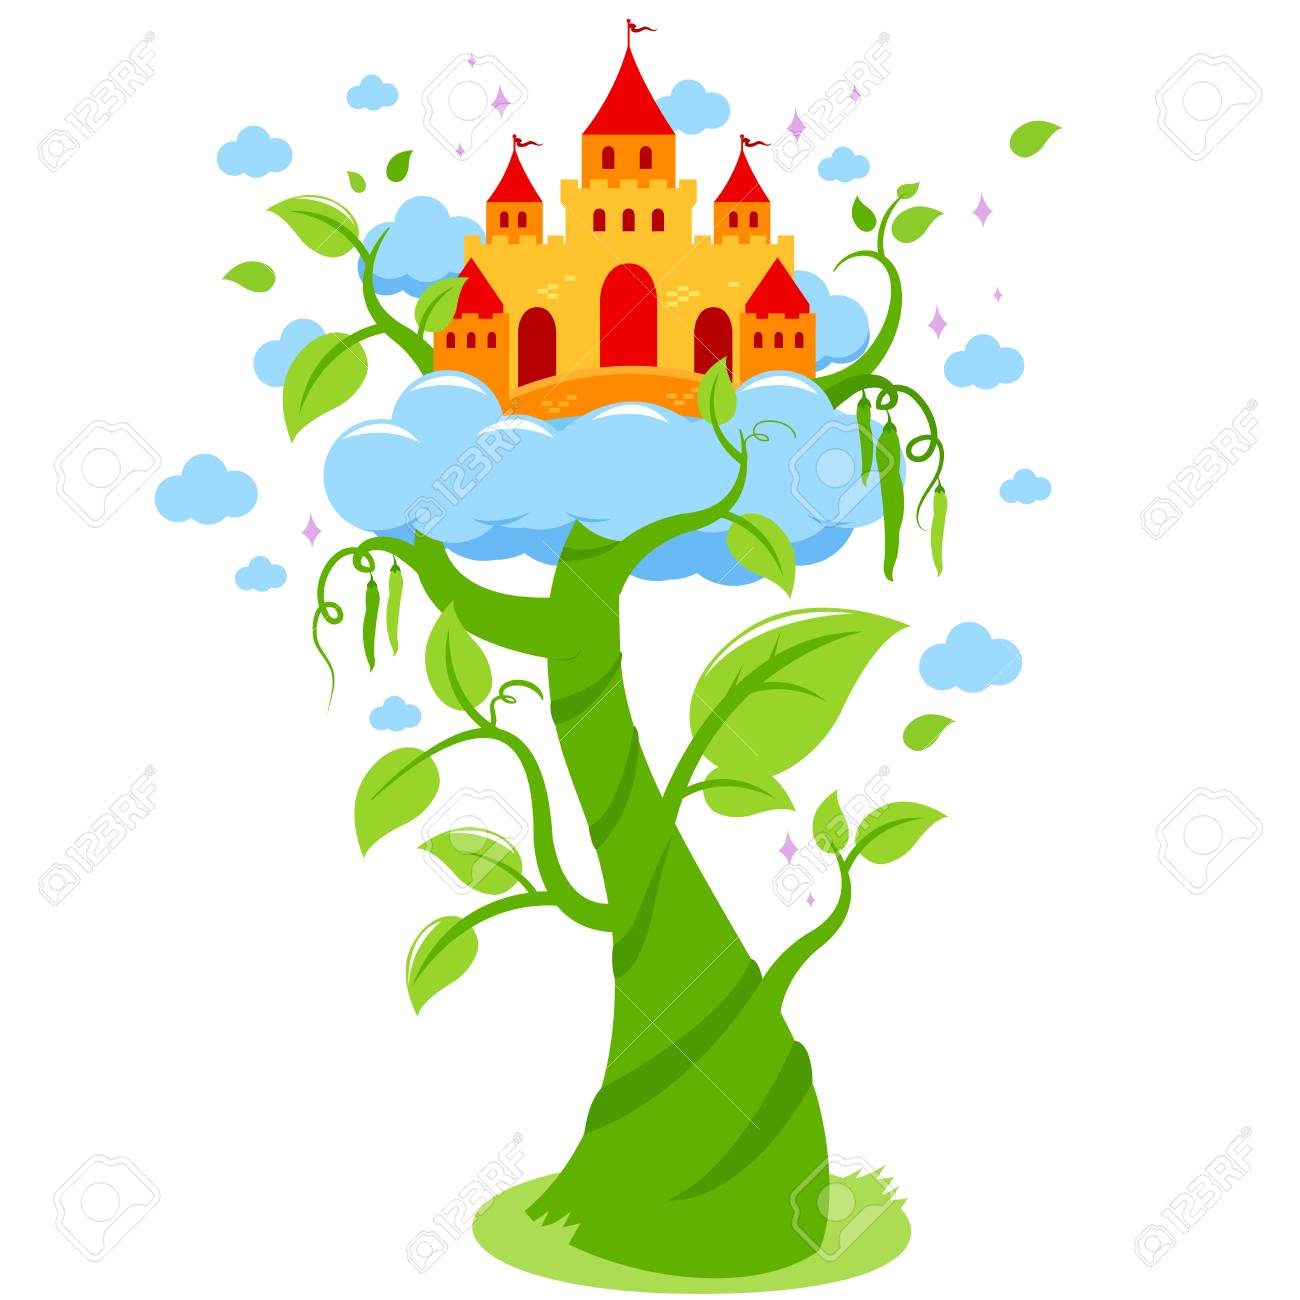 https://previews.123rf.com/images/stockakia/stockakia1711/stockakia171100022/90595000-magic-beanstalk-and-castle-in-the-clouds-.jpg